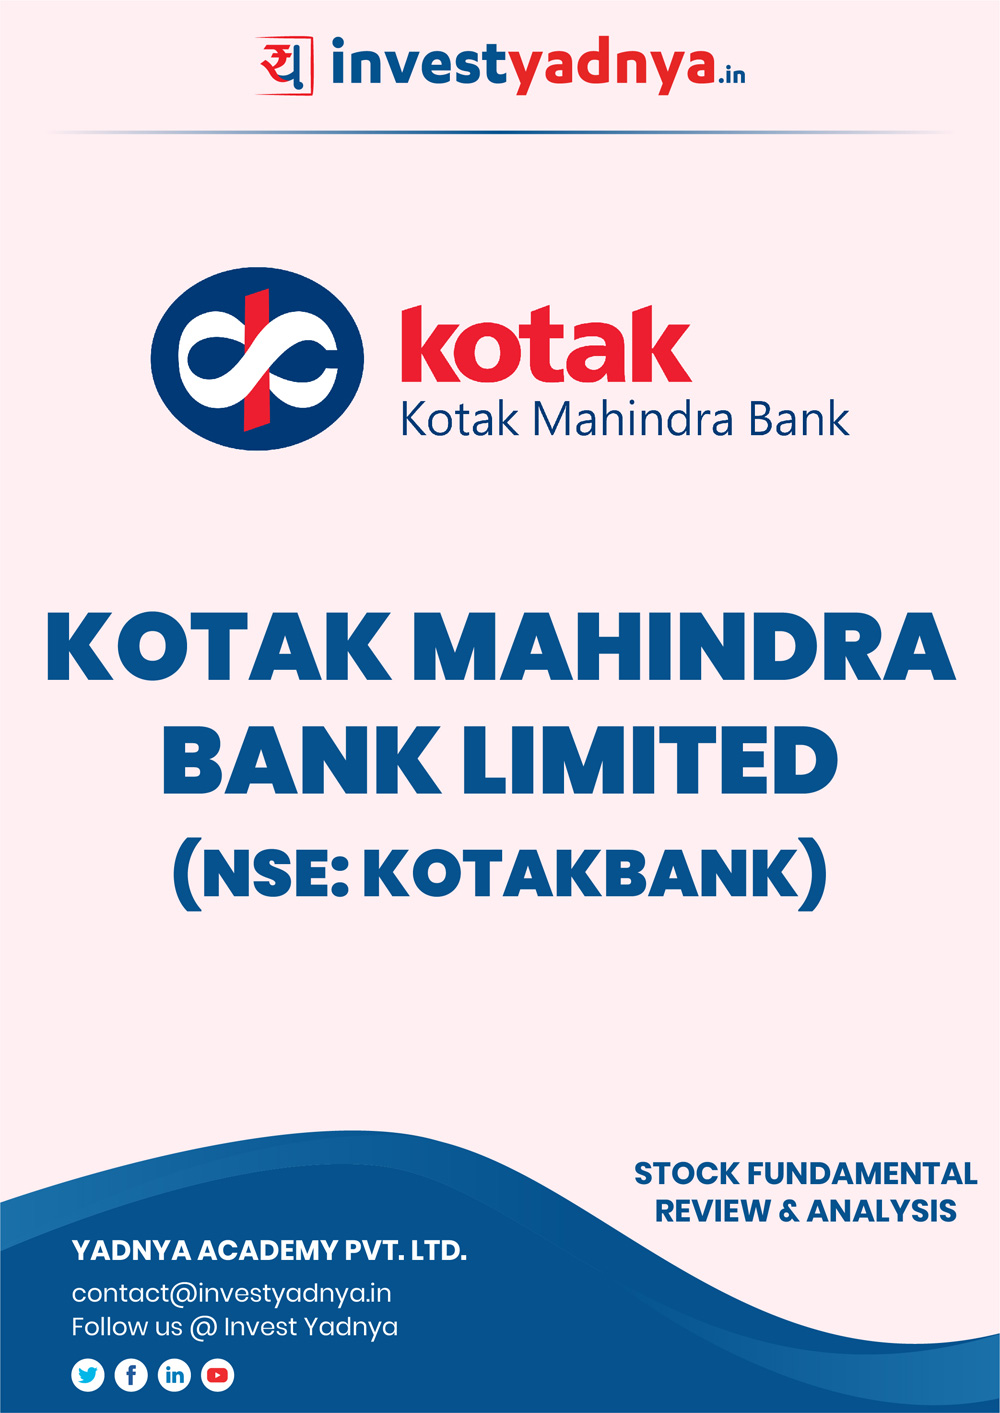 Kotak Mahindra Bank Company Review based on Q32018-19 and FY2017-18 data. Book contains Fundamental Analysis of the bank considering both Quantitative (Financial) and Qualitative Parameters.